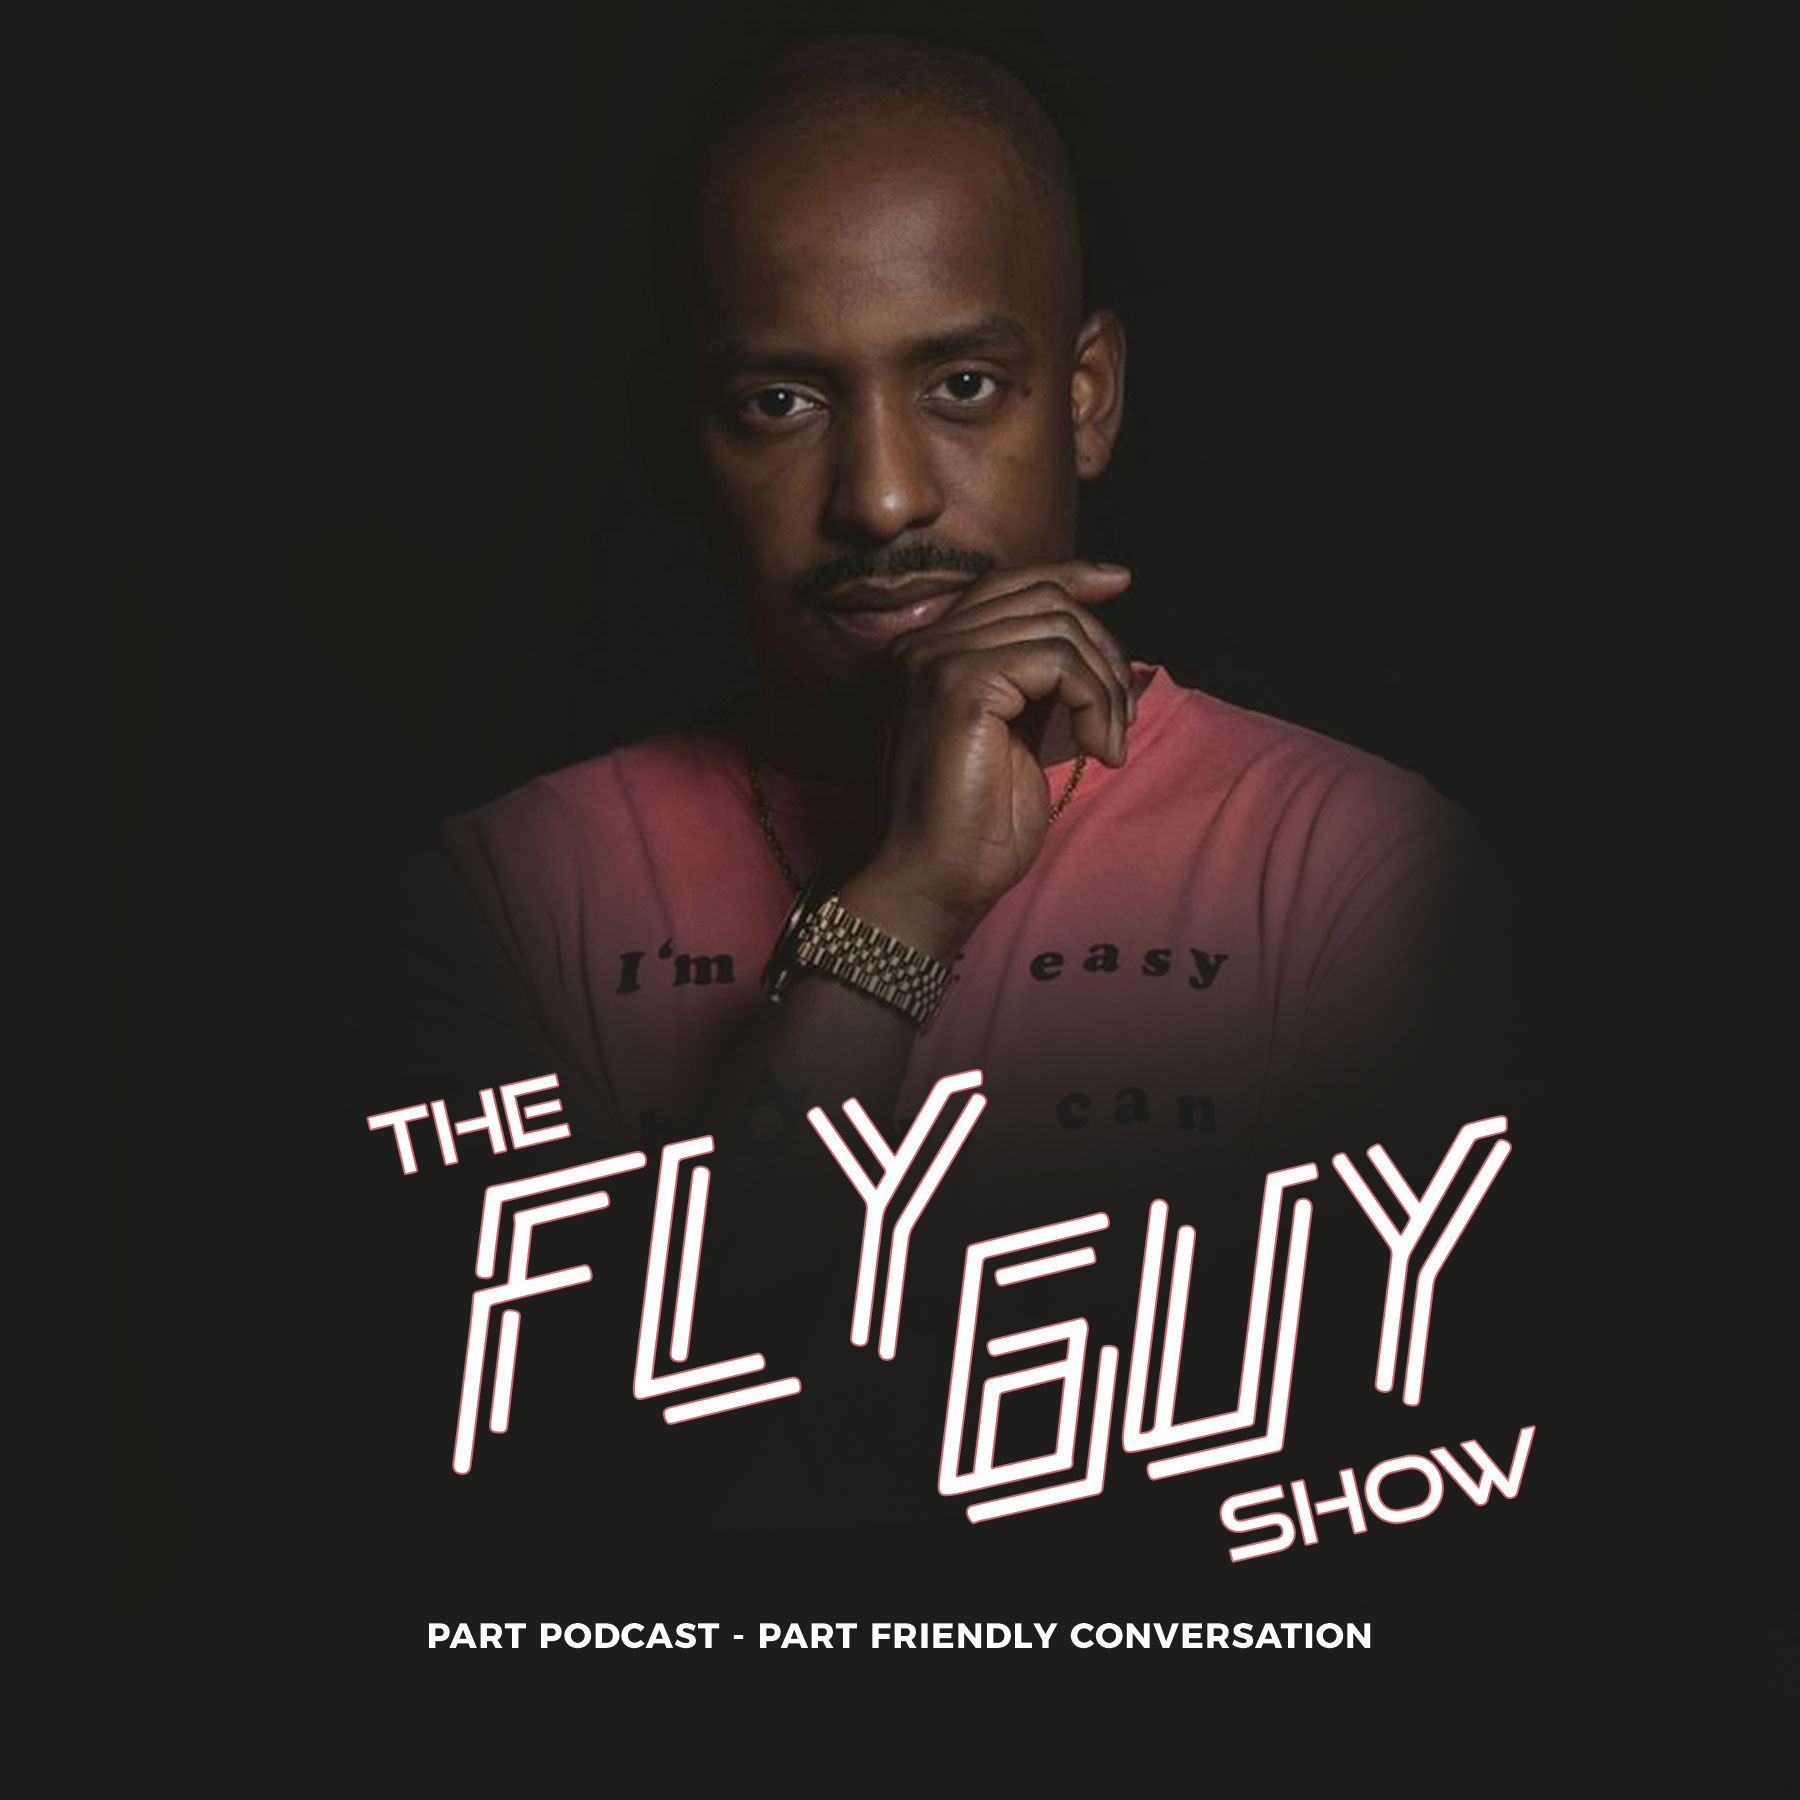 The FLY GUY Show